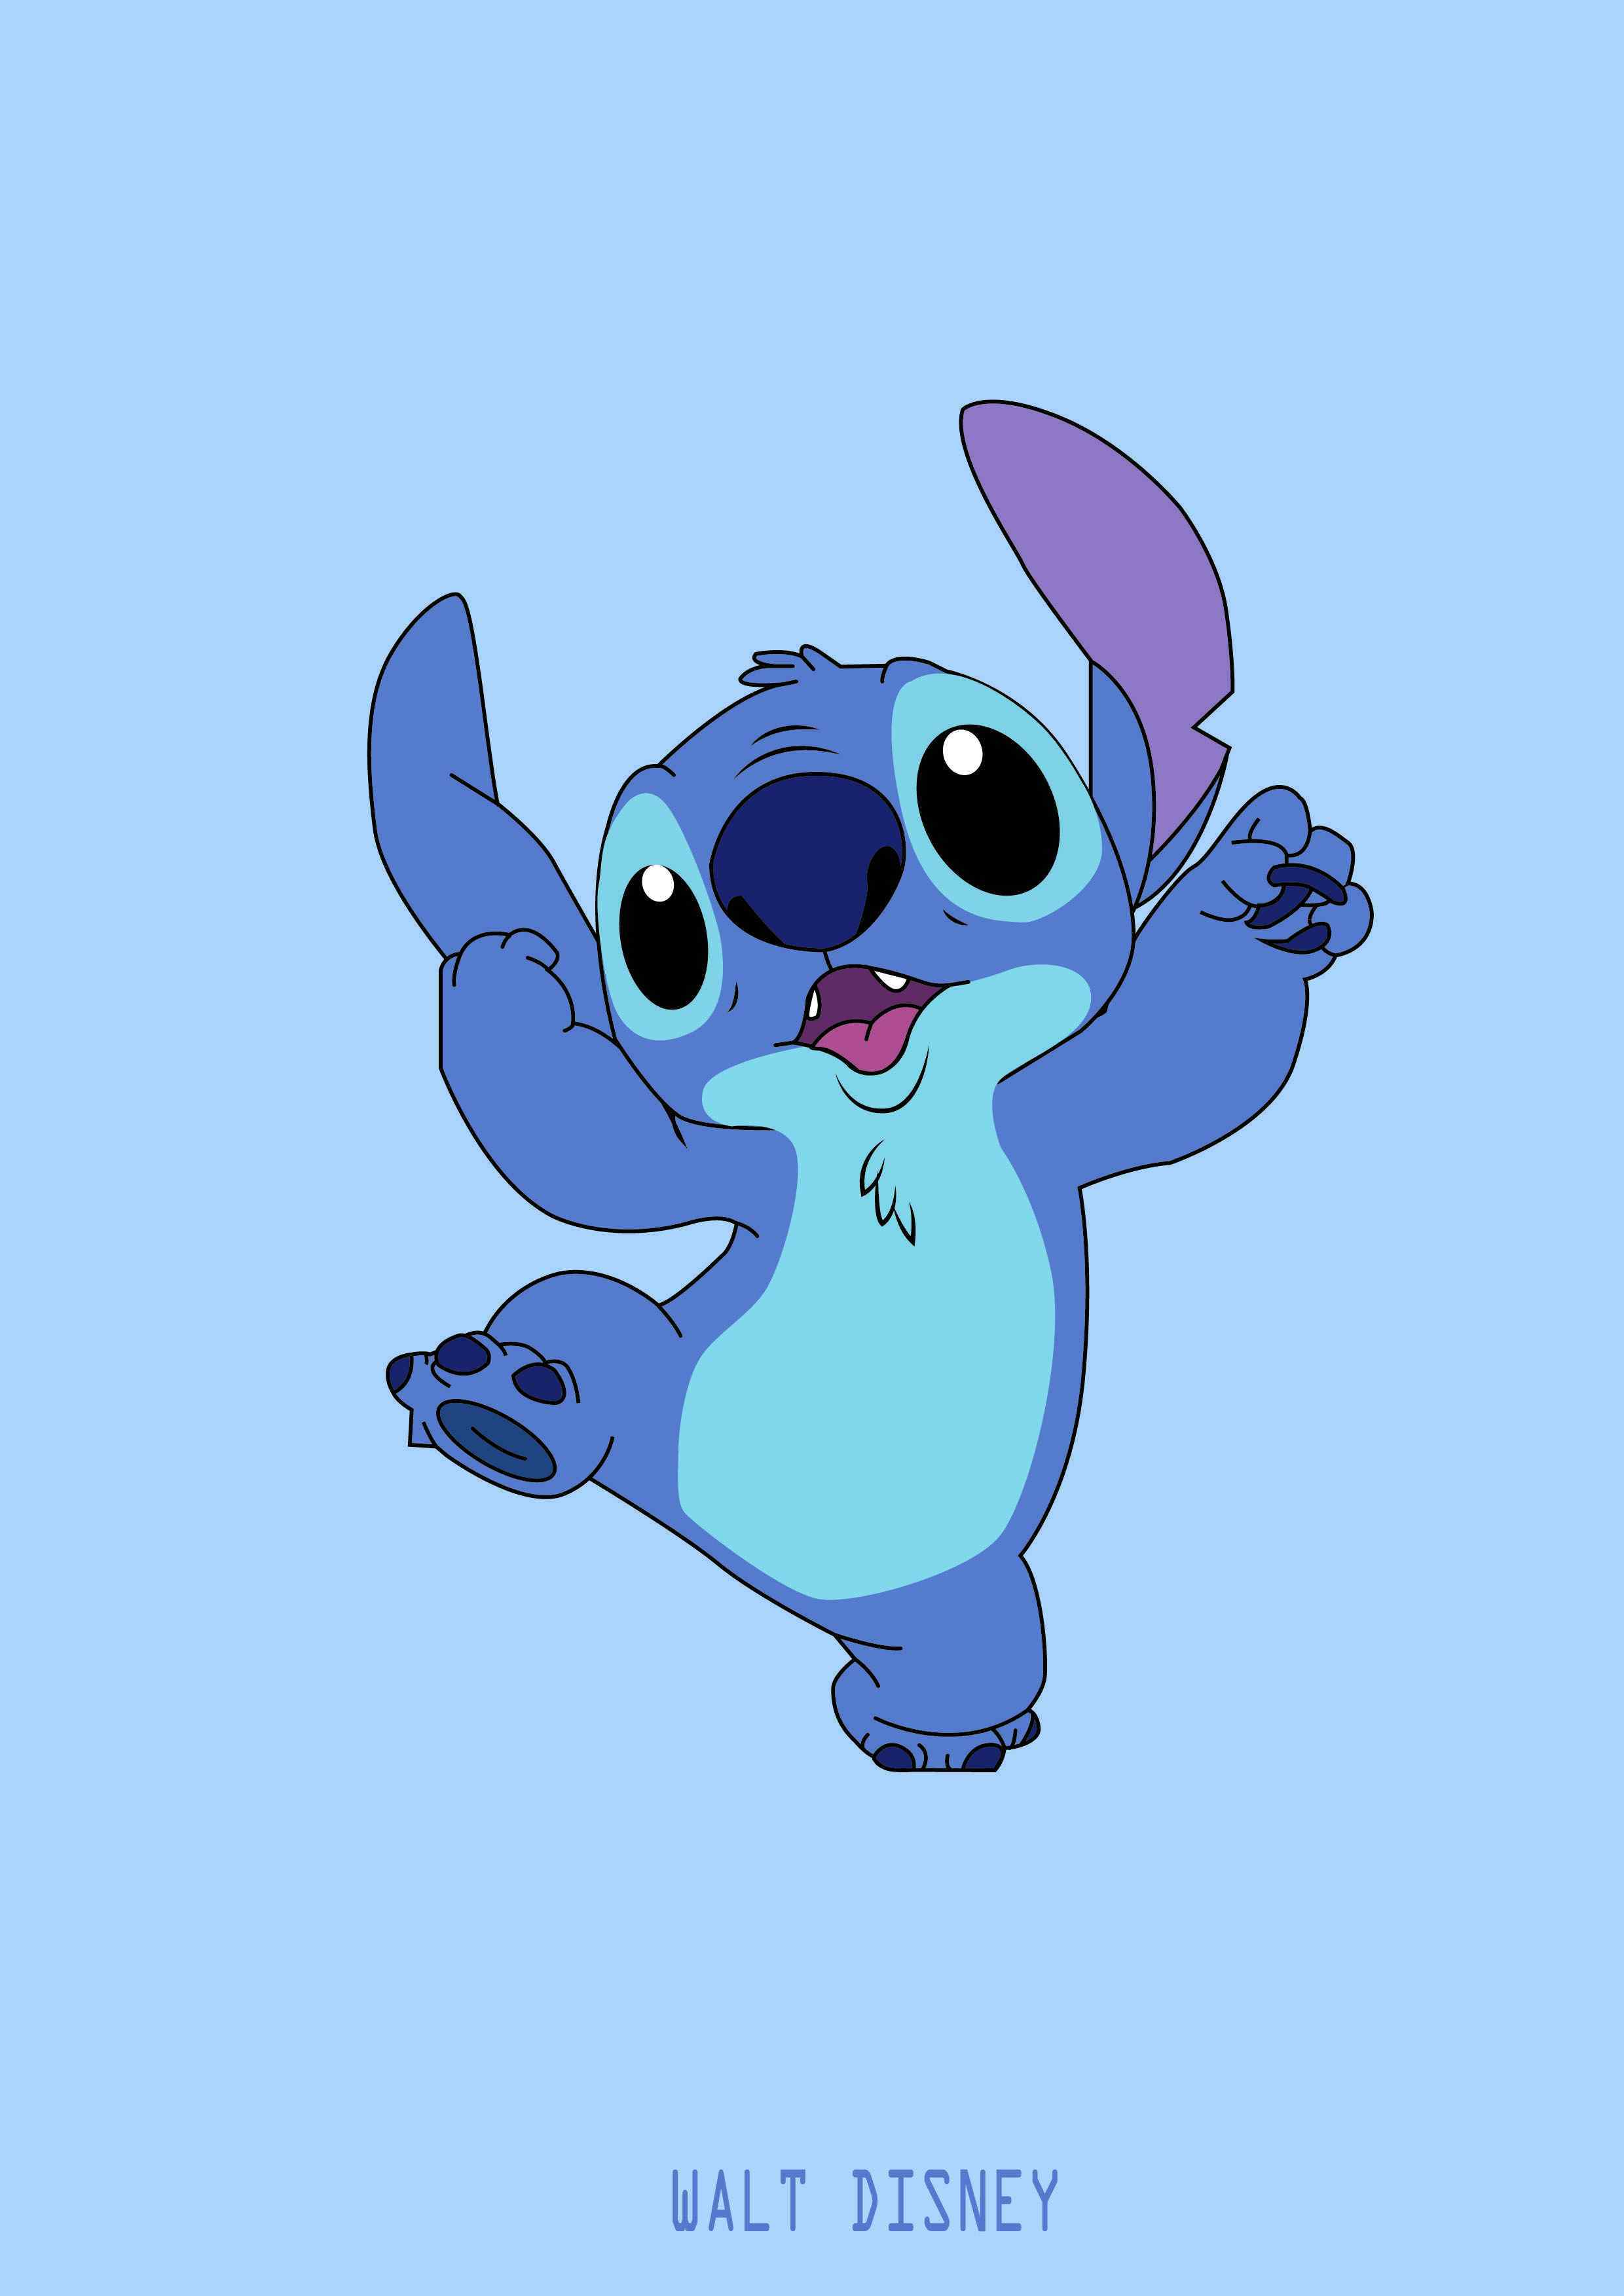 Wallpaper Iphone Disney Stitch Wallpapers Phone Cases